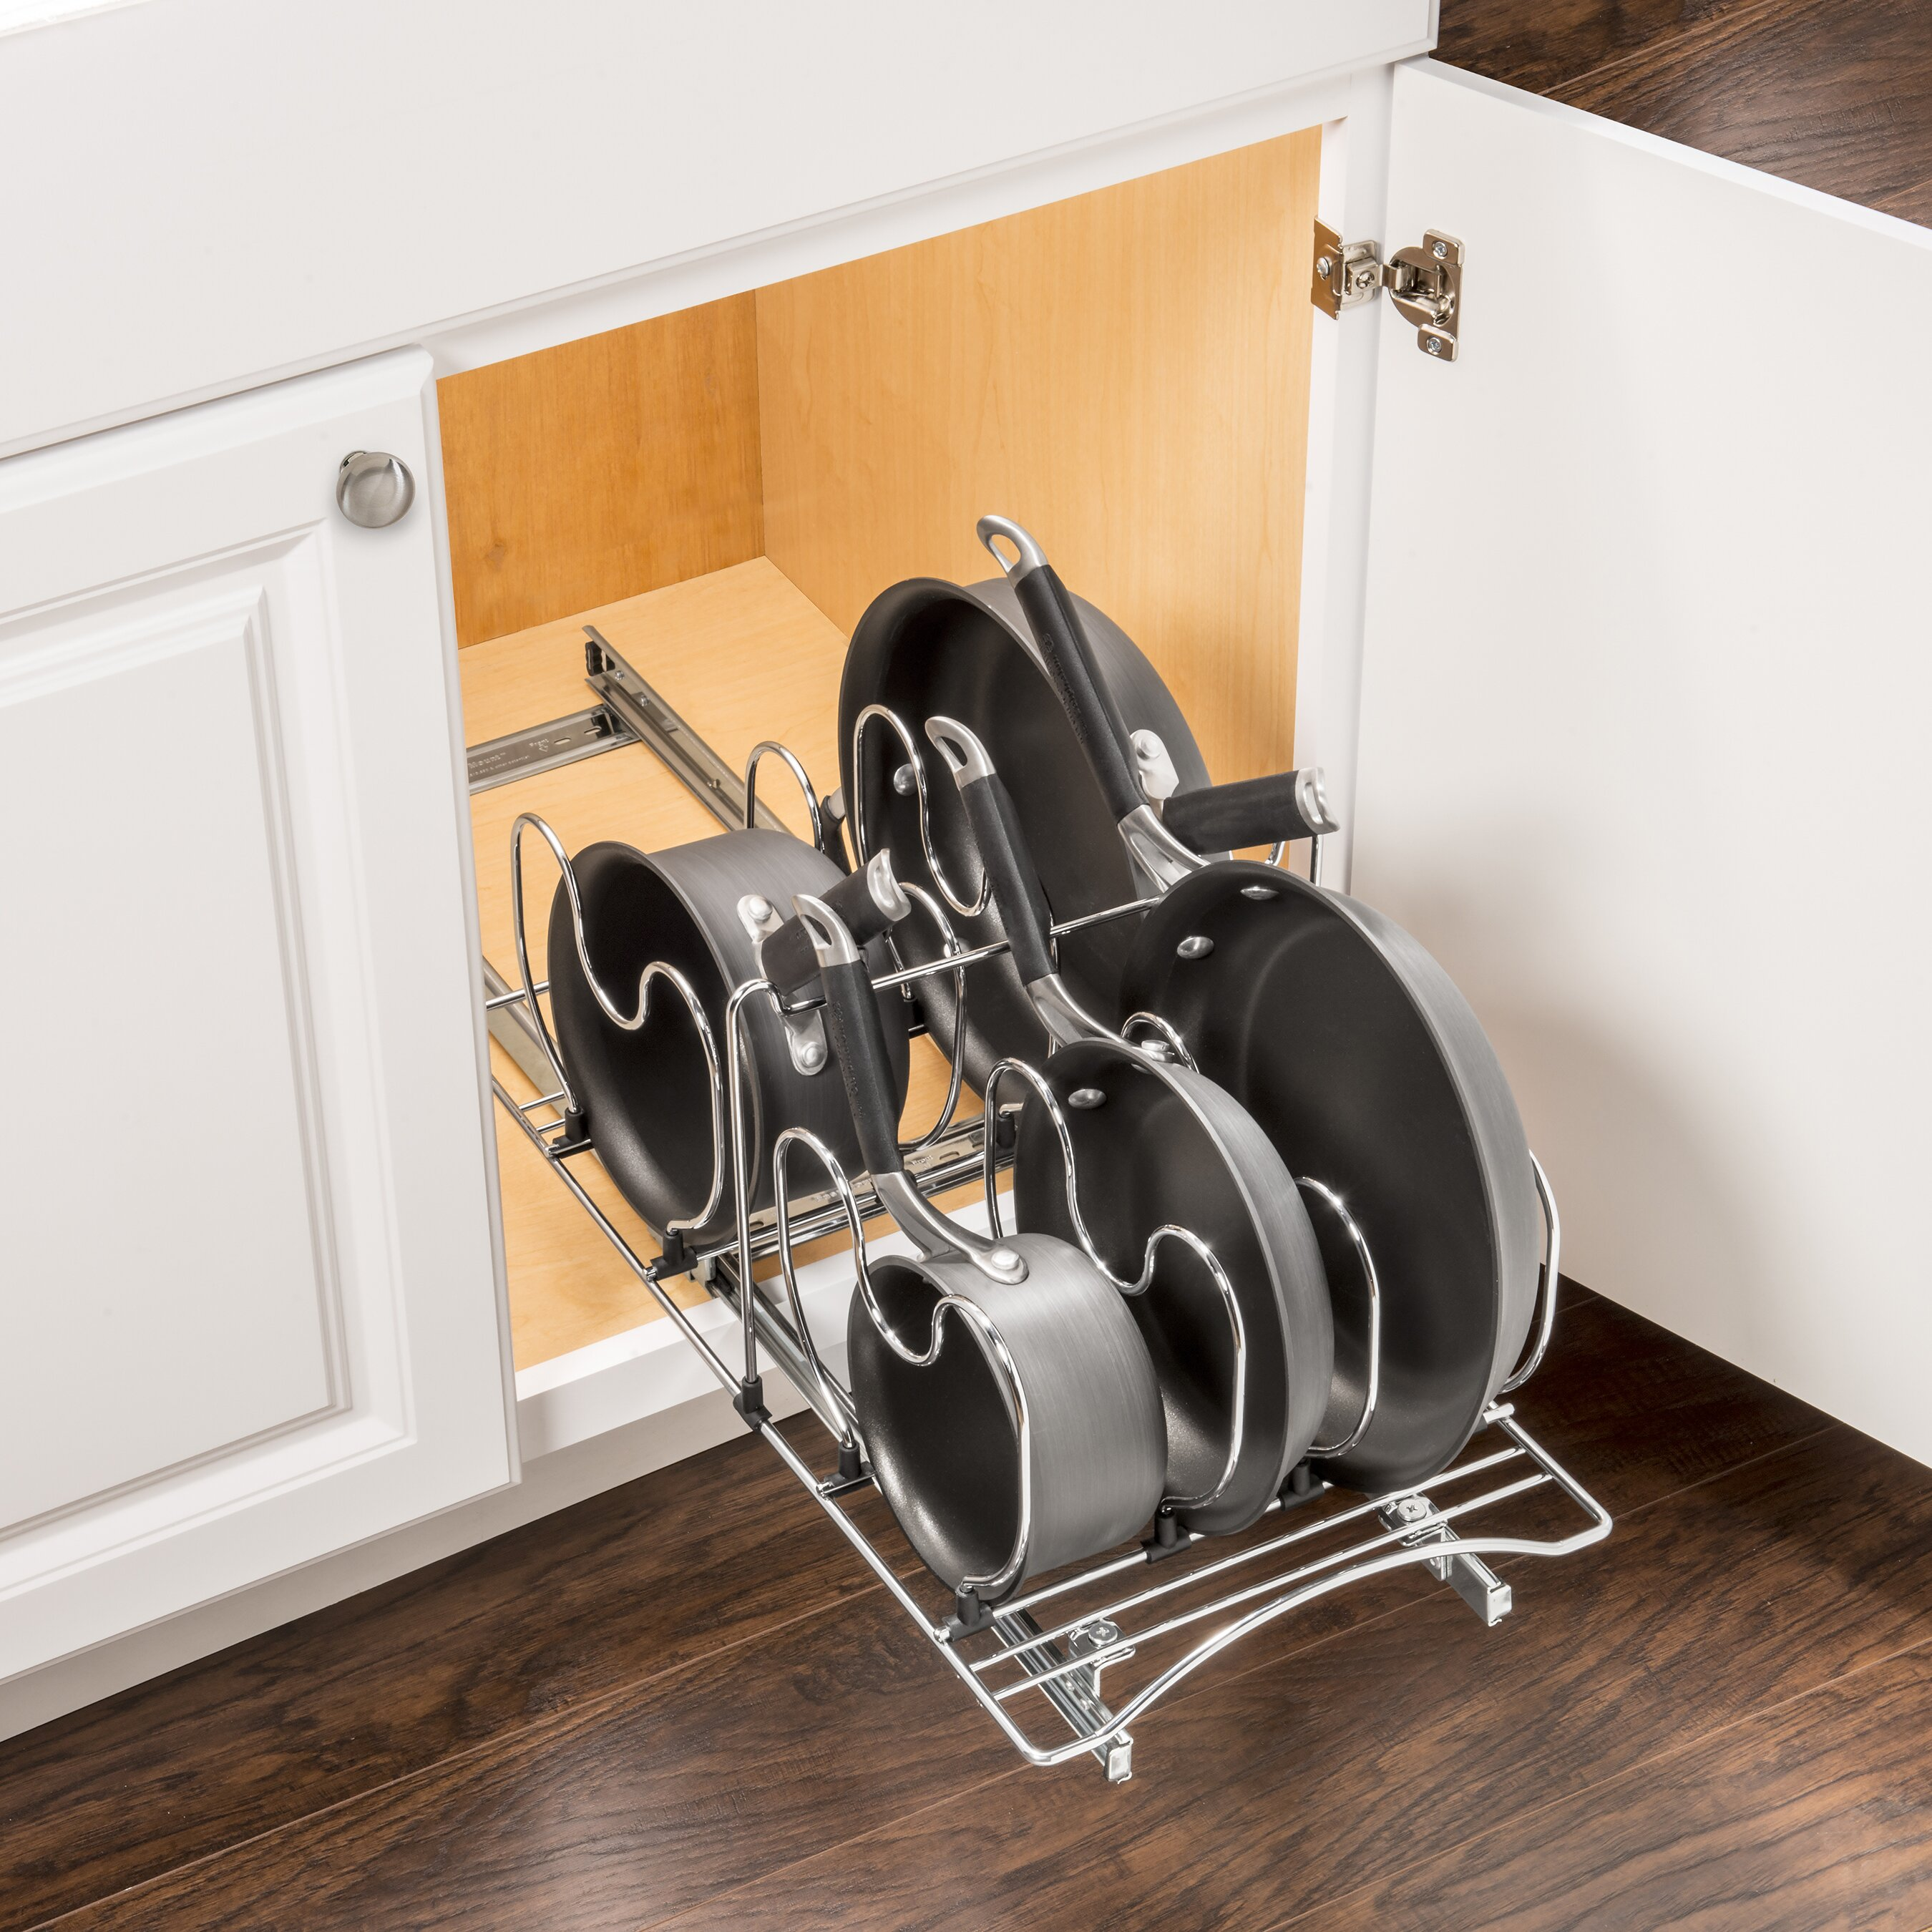 Lynk Roll Out Cookware Organizer - Pull Out Under Cabinet ...